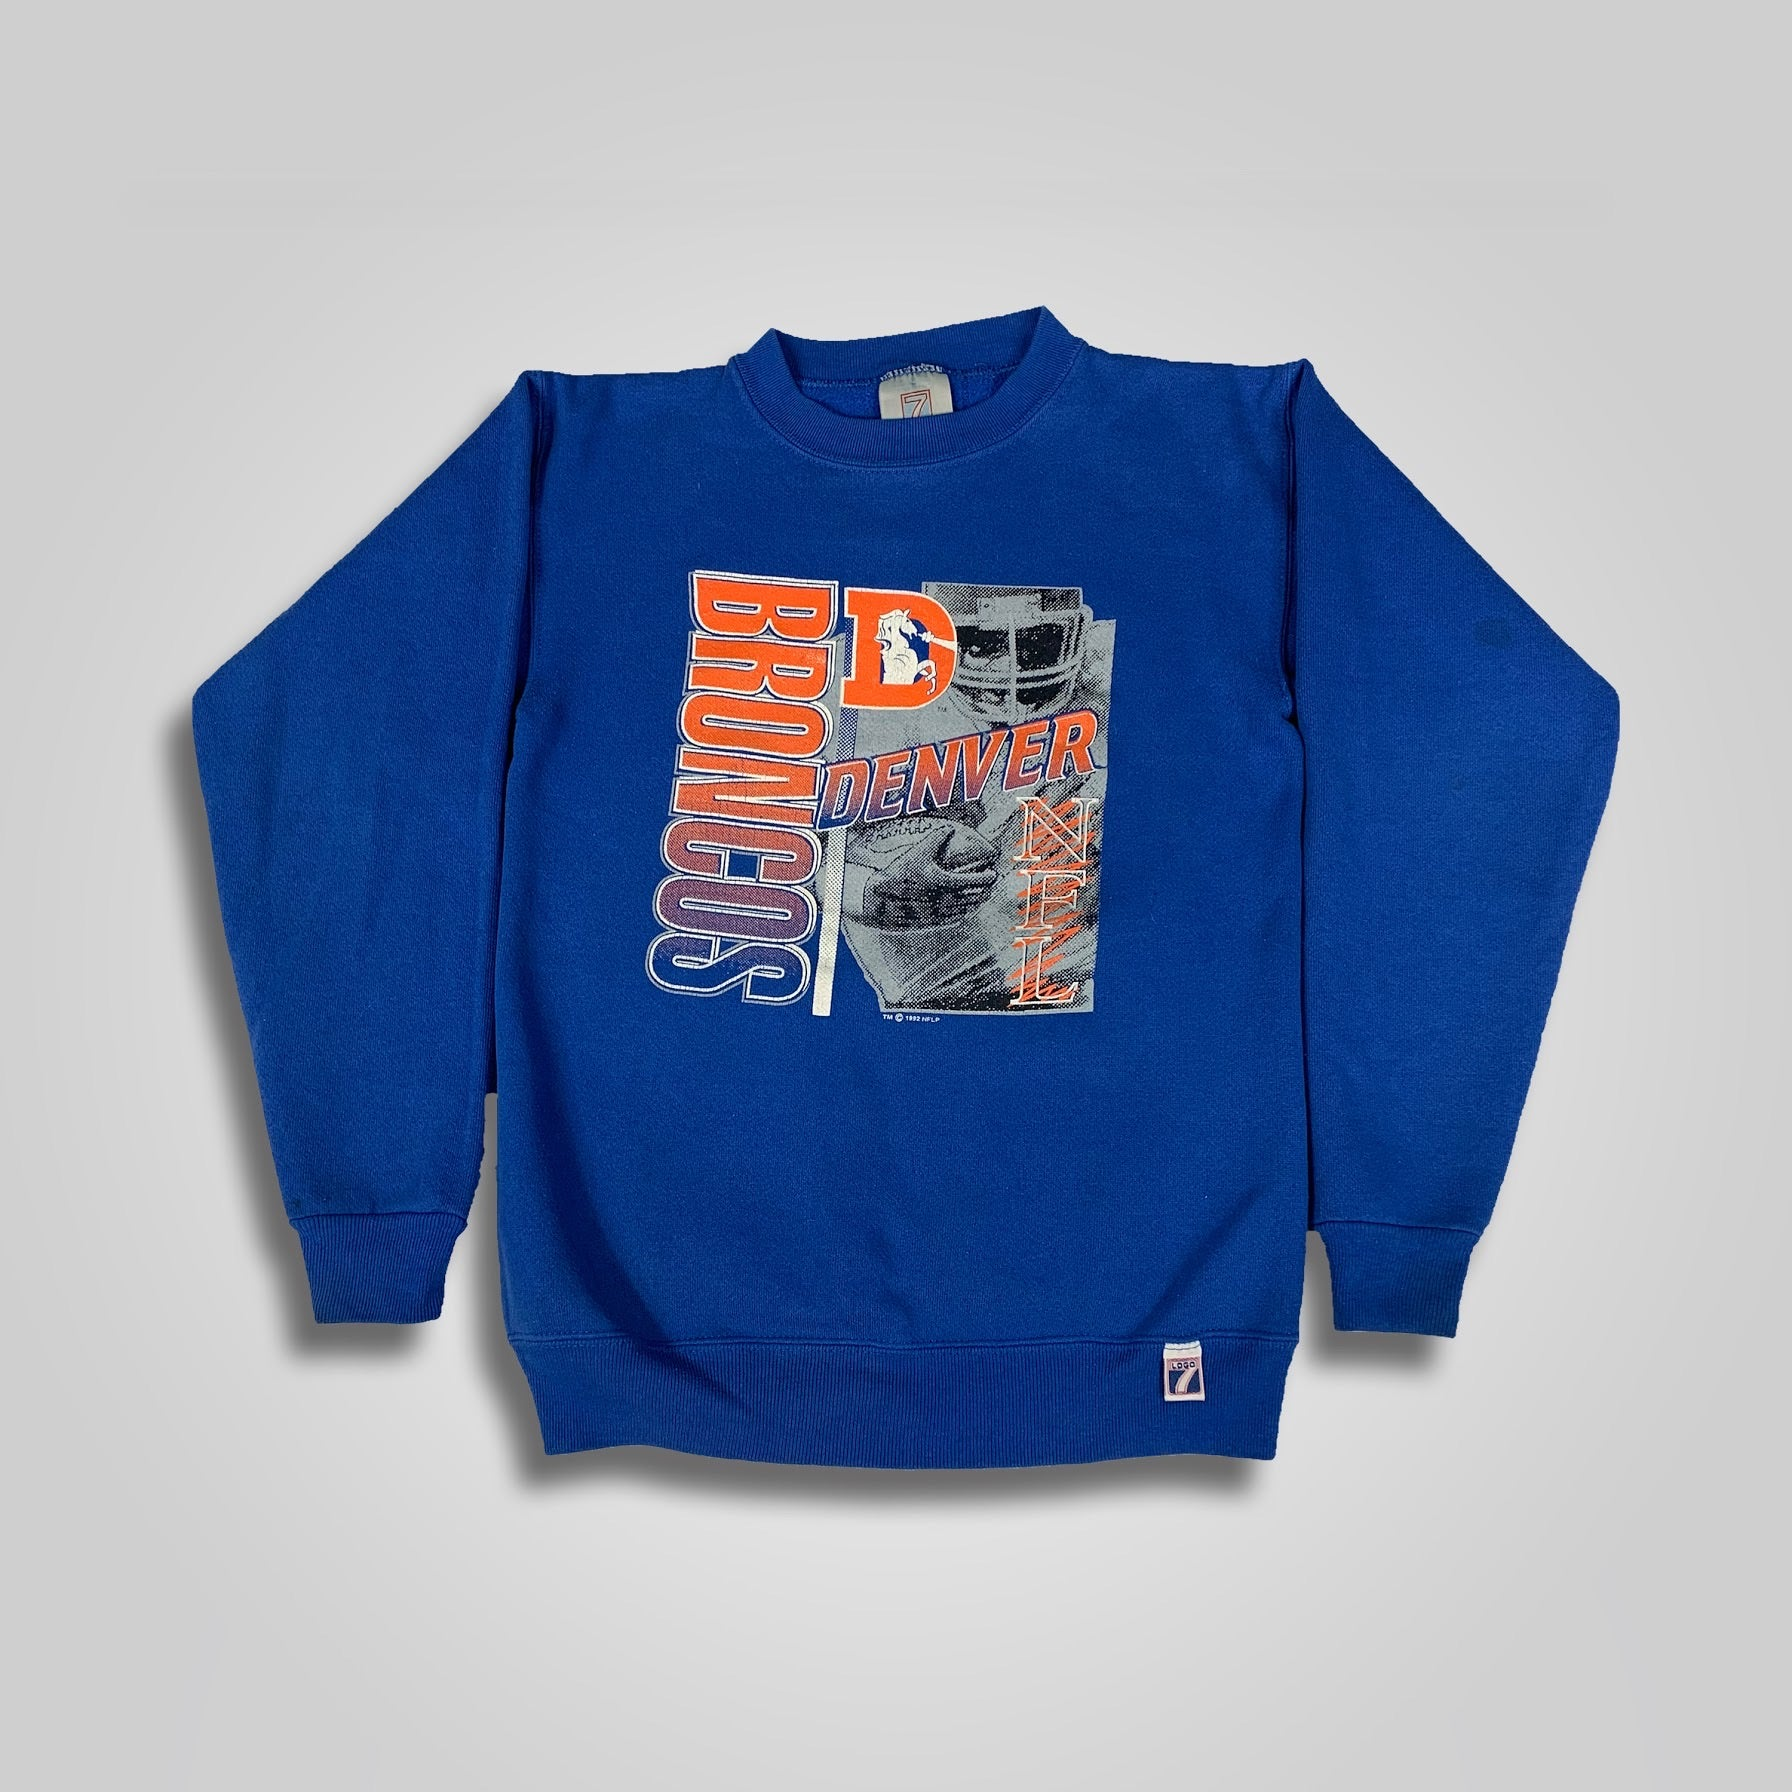 1992 Logo 7 Denver Broncos Spell Out Crew Neck Sweatshirt